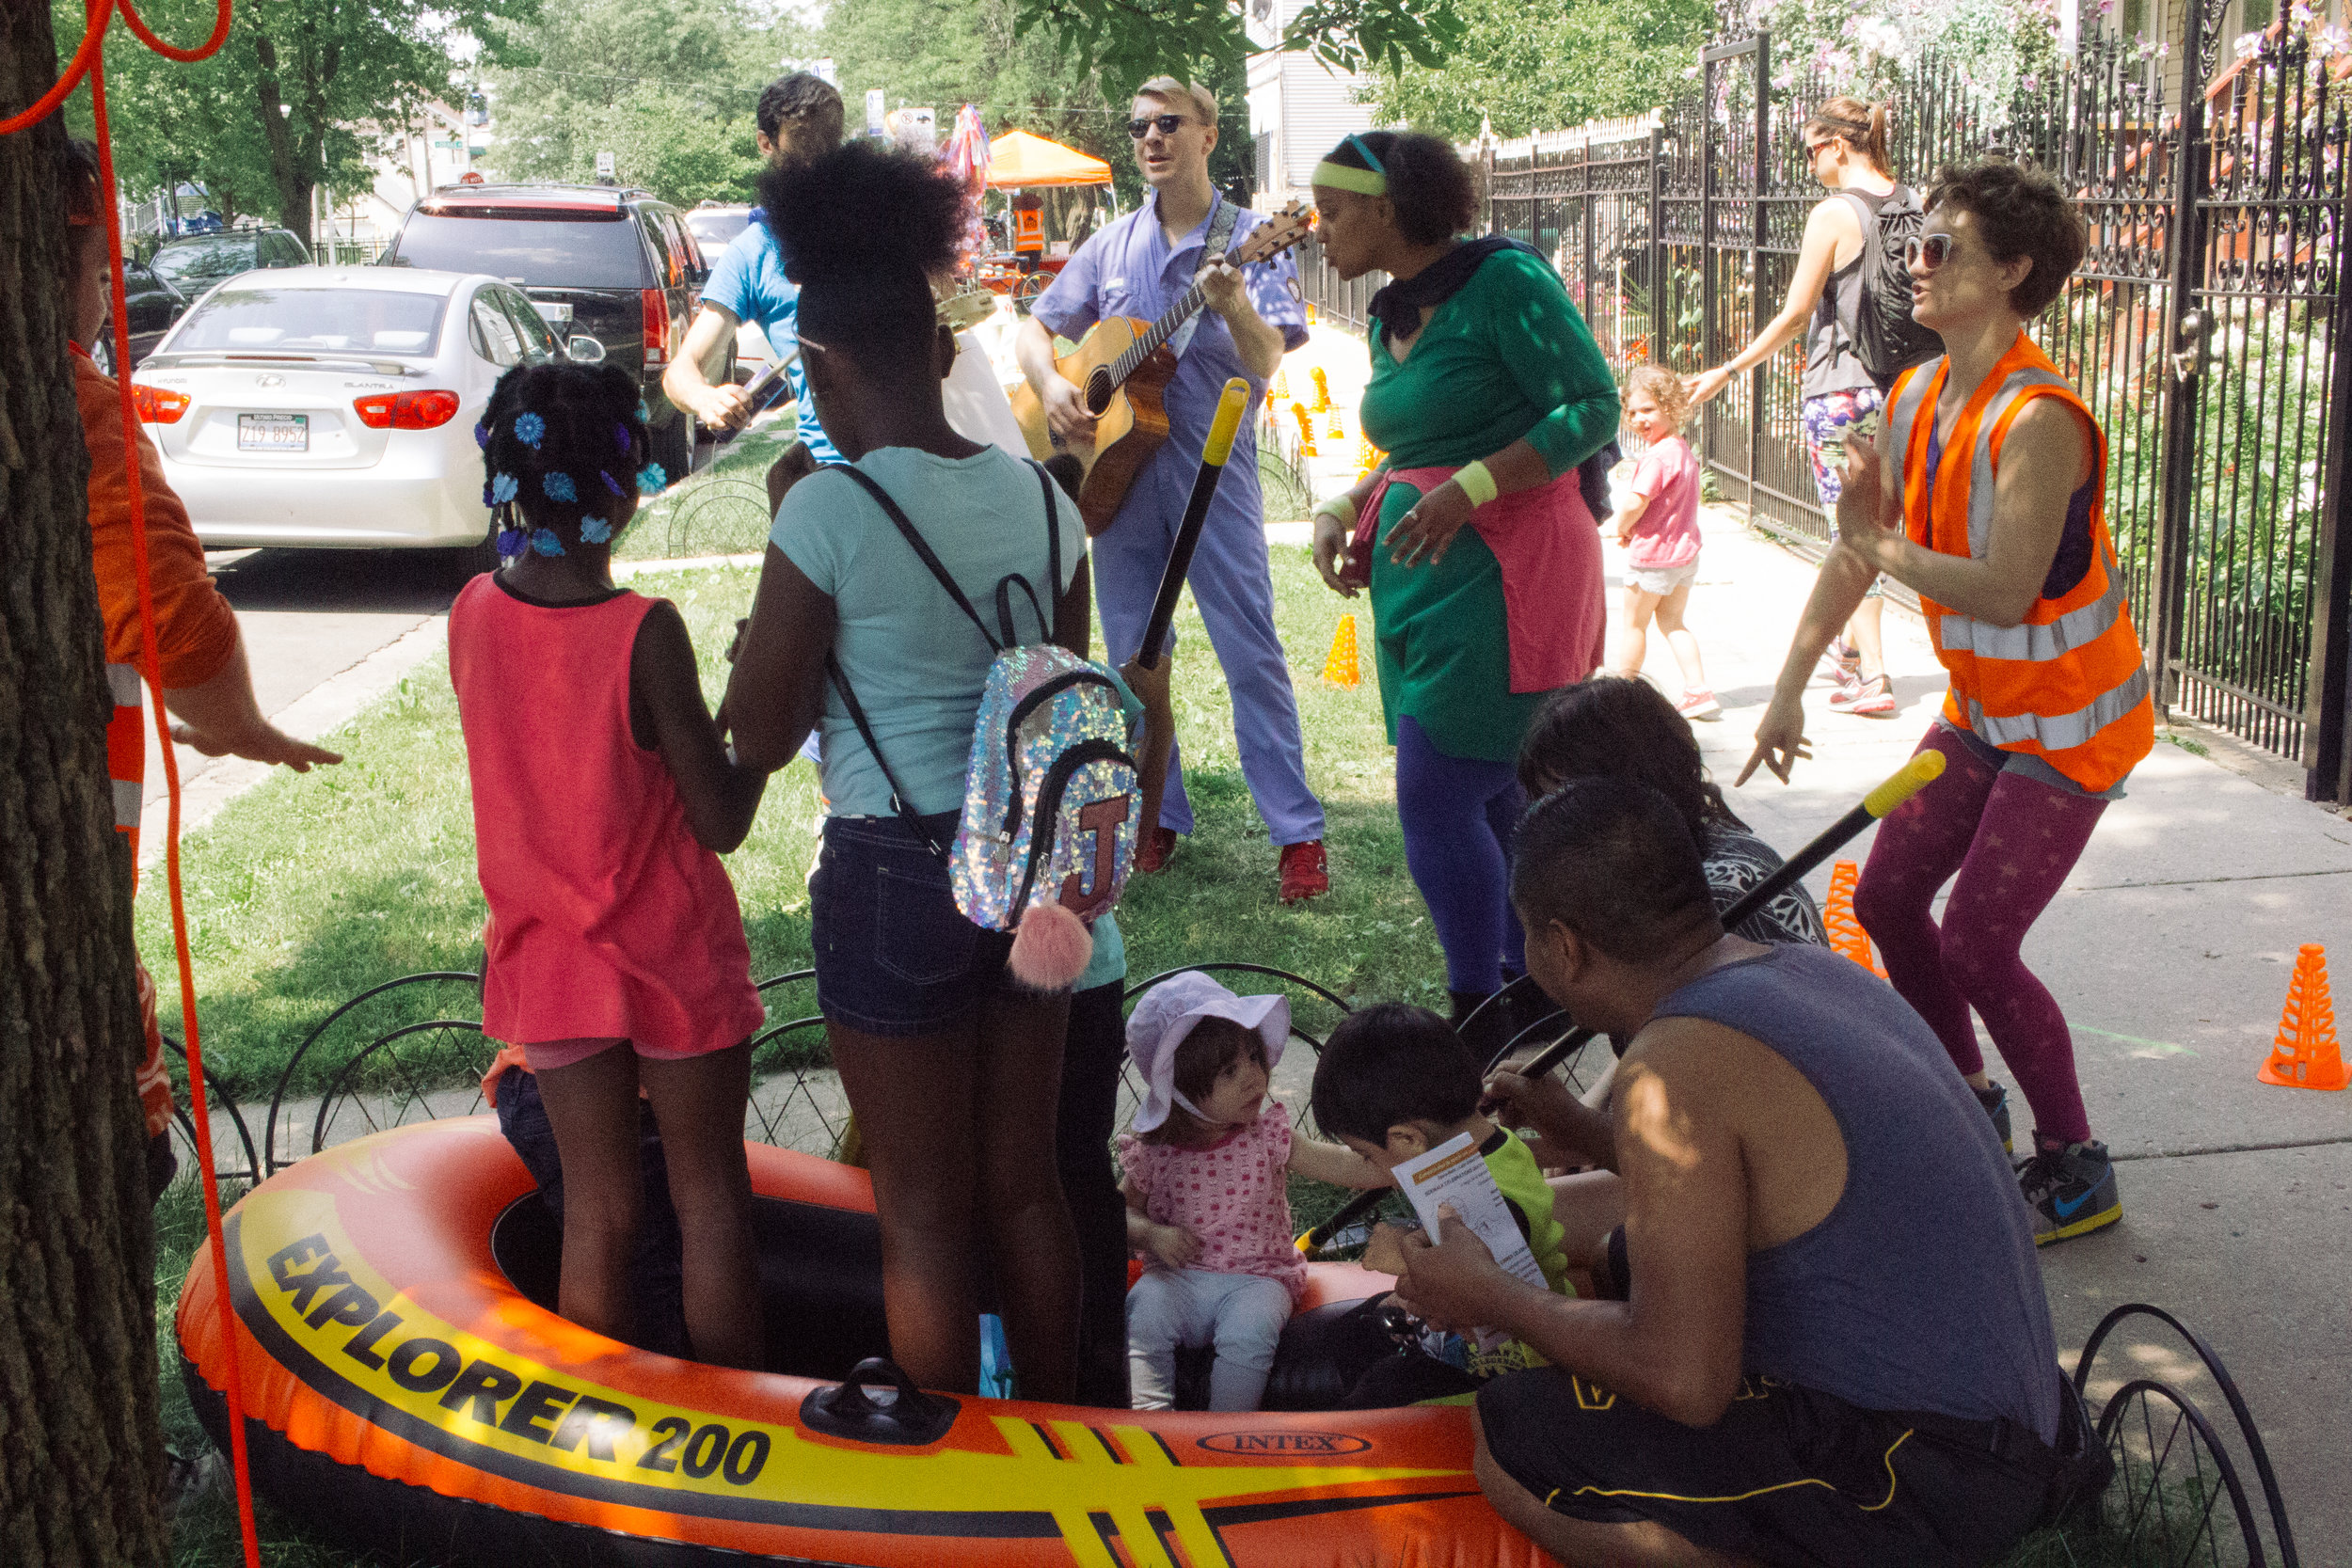 Opera-Matic artists, LUCHA residents, & neighbors participate in a Sidewalk Celebration, summer 2017